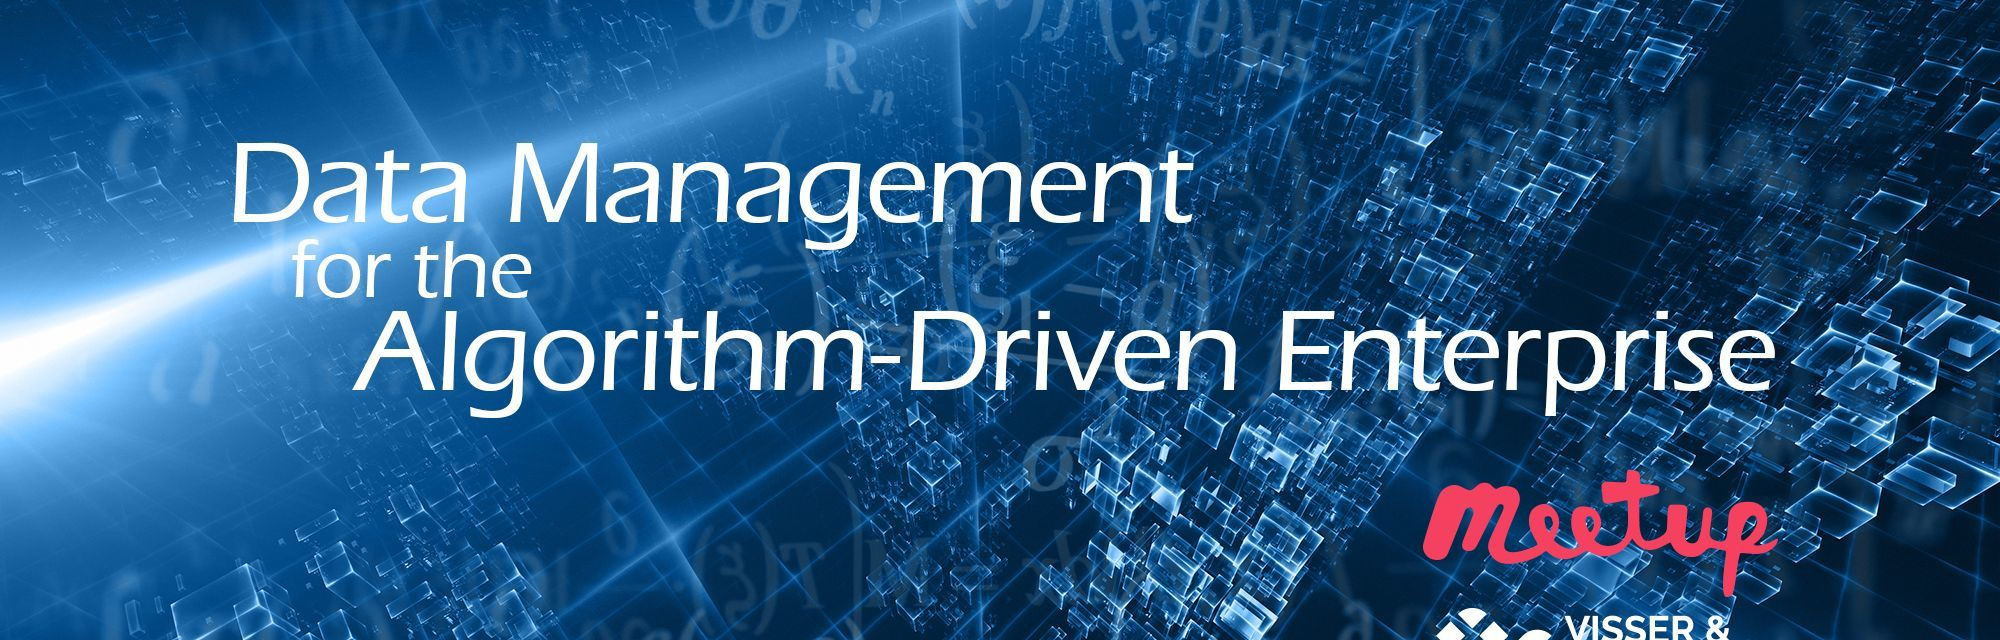 Event - Data Management for the Algorithm-Driven Enterprise